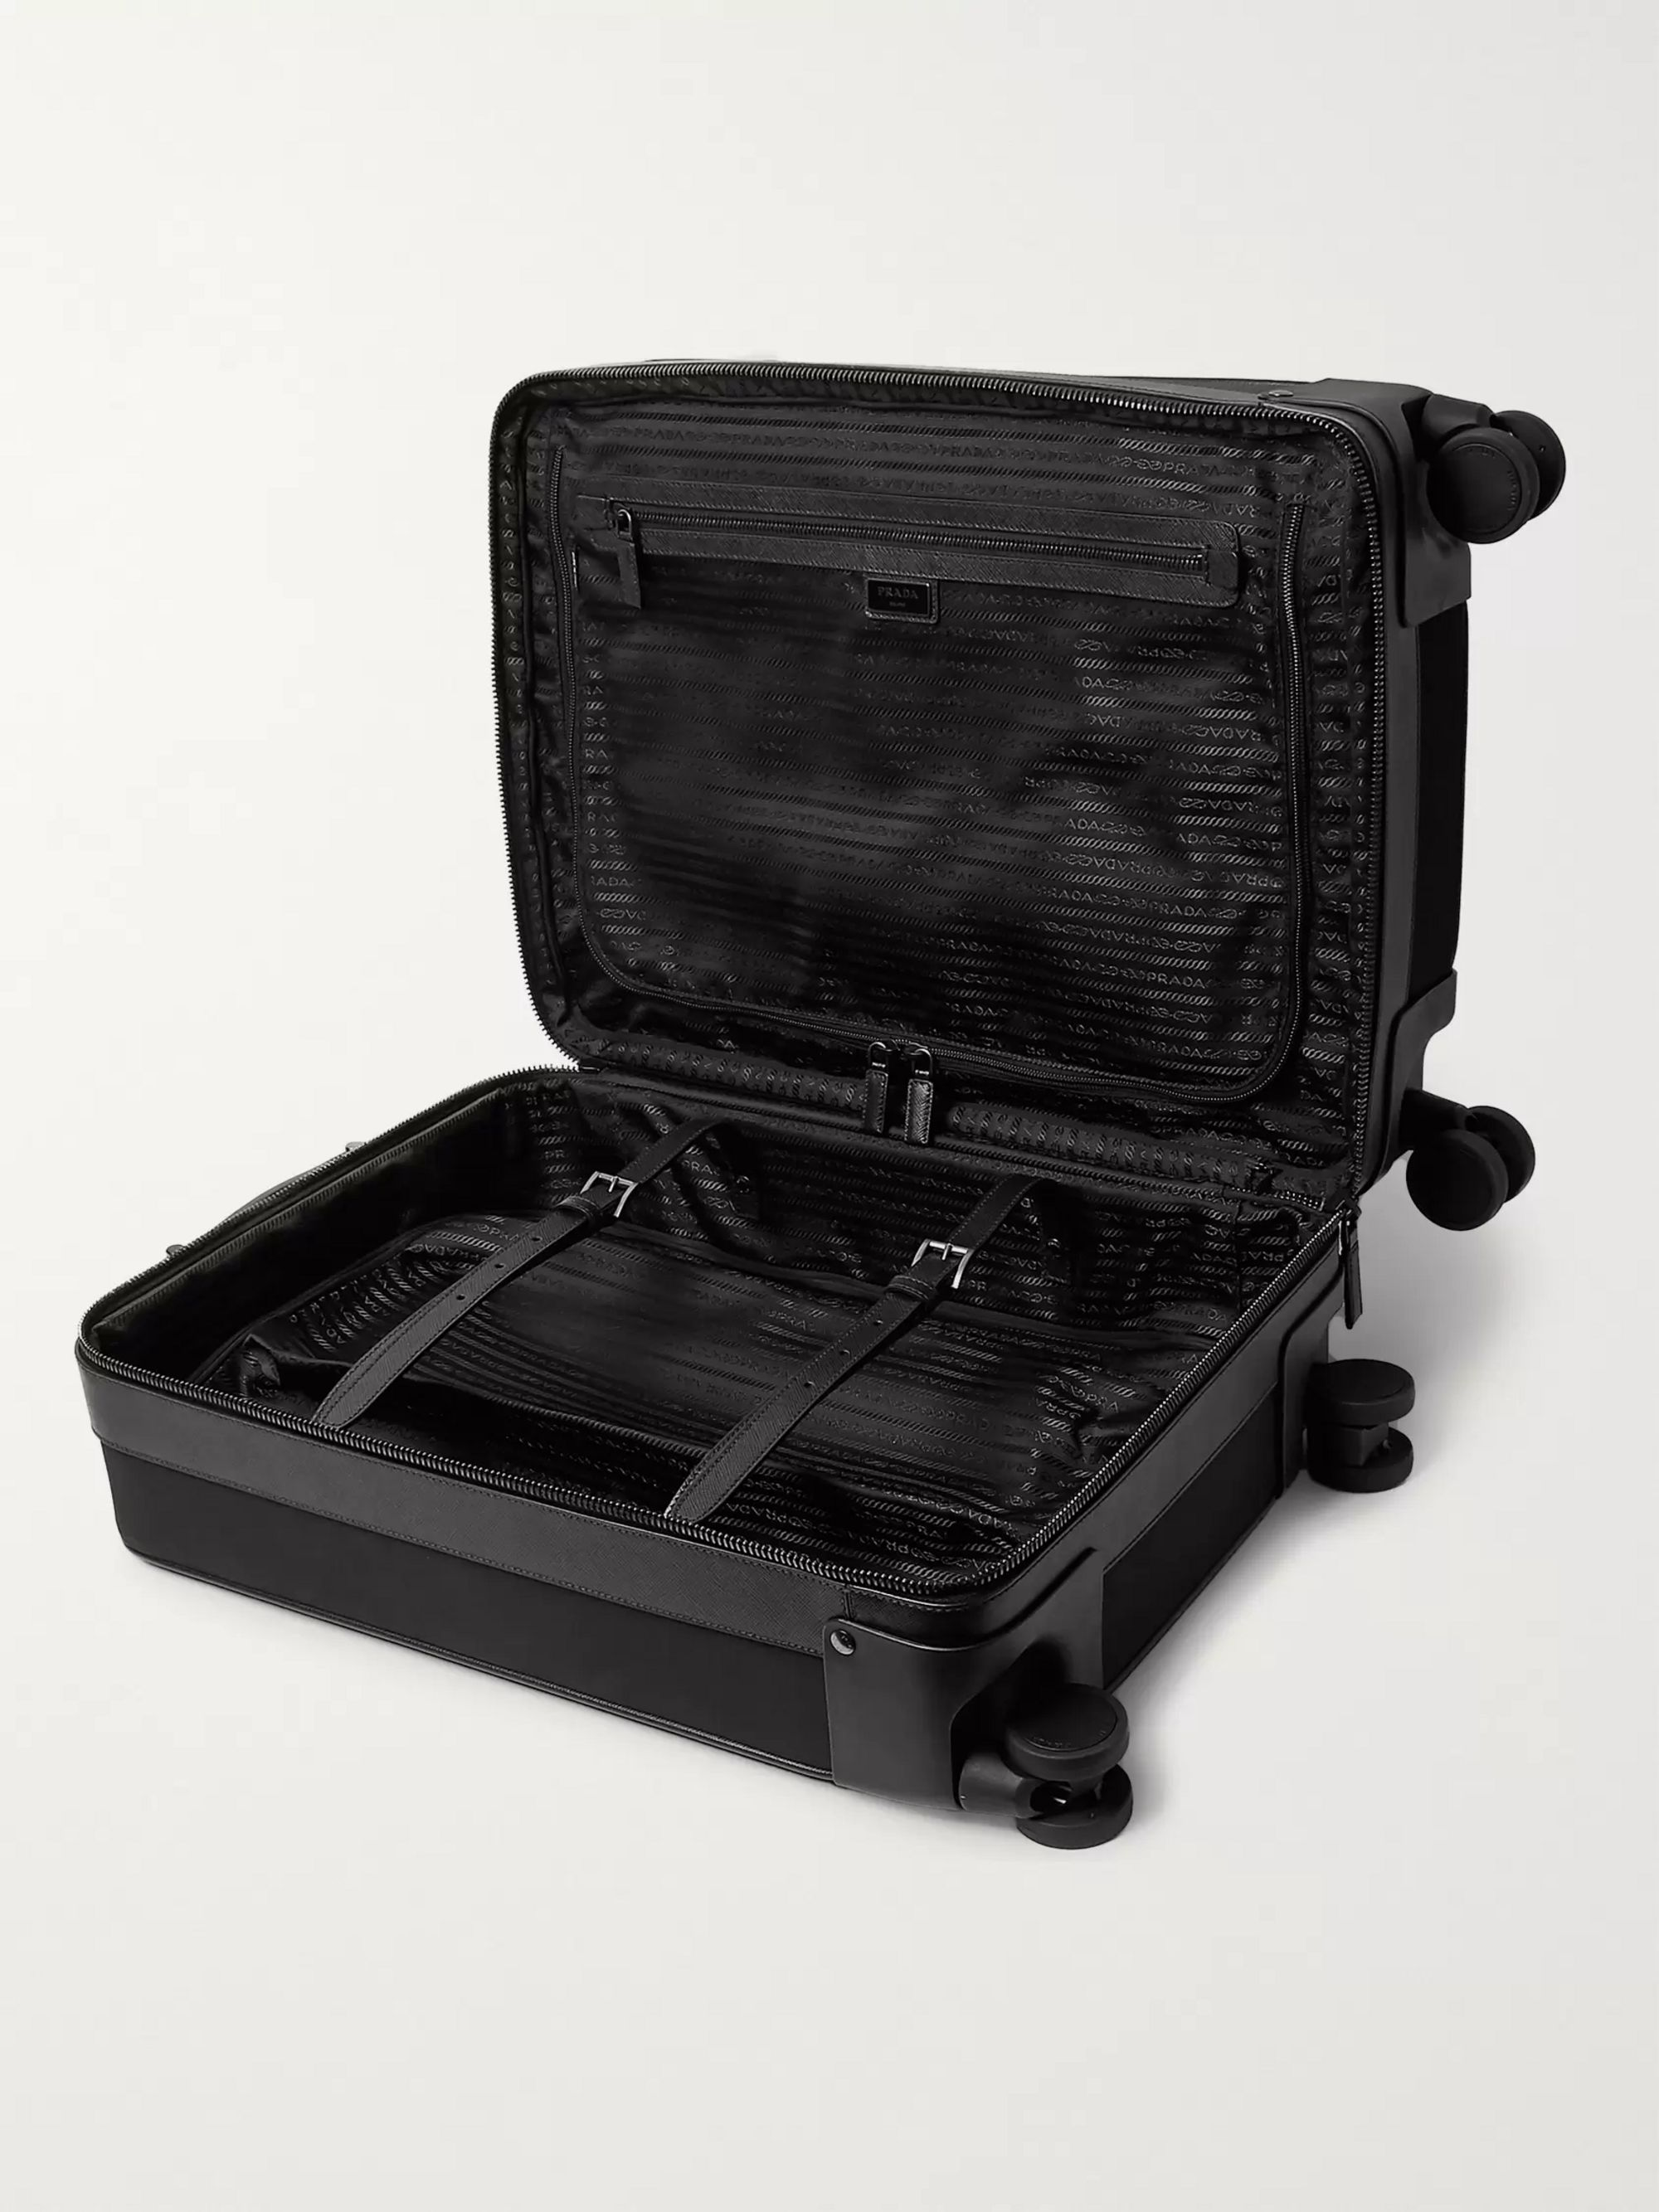 Prada Leather-Trimmed Canvas Carry-On Suitcase